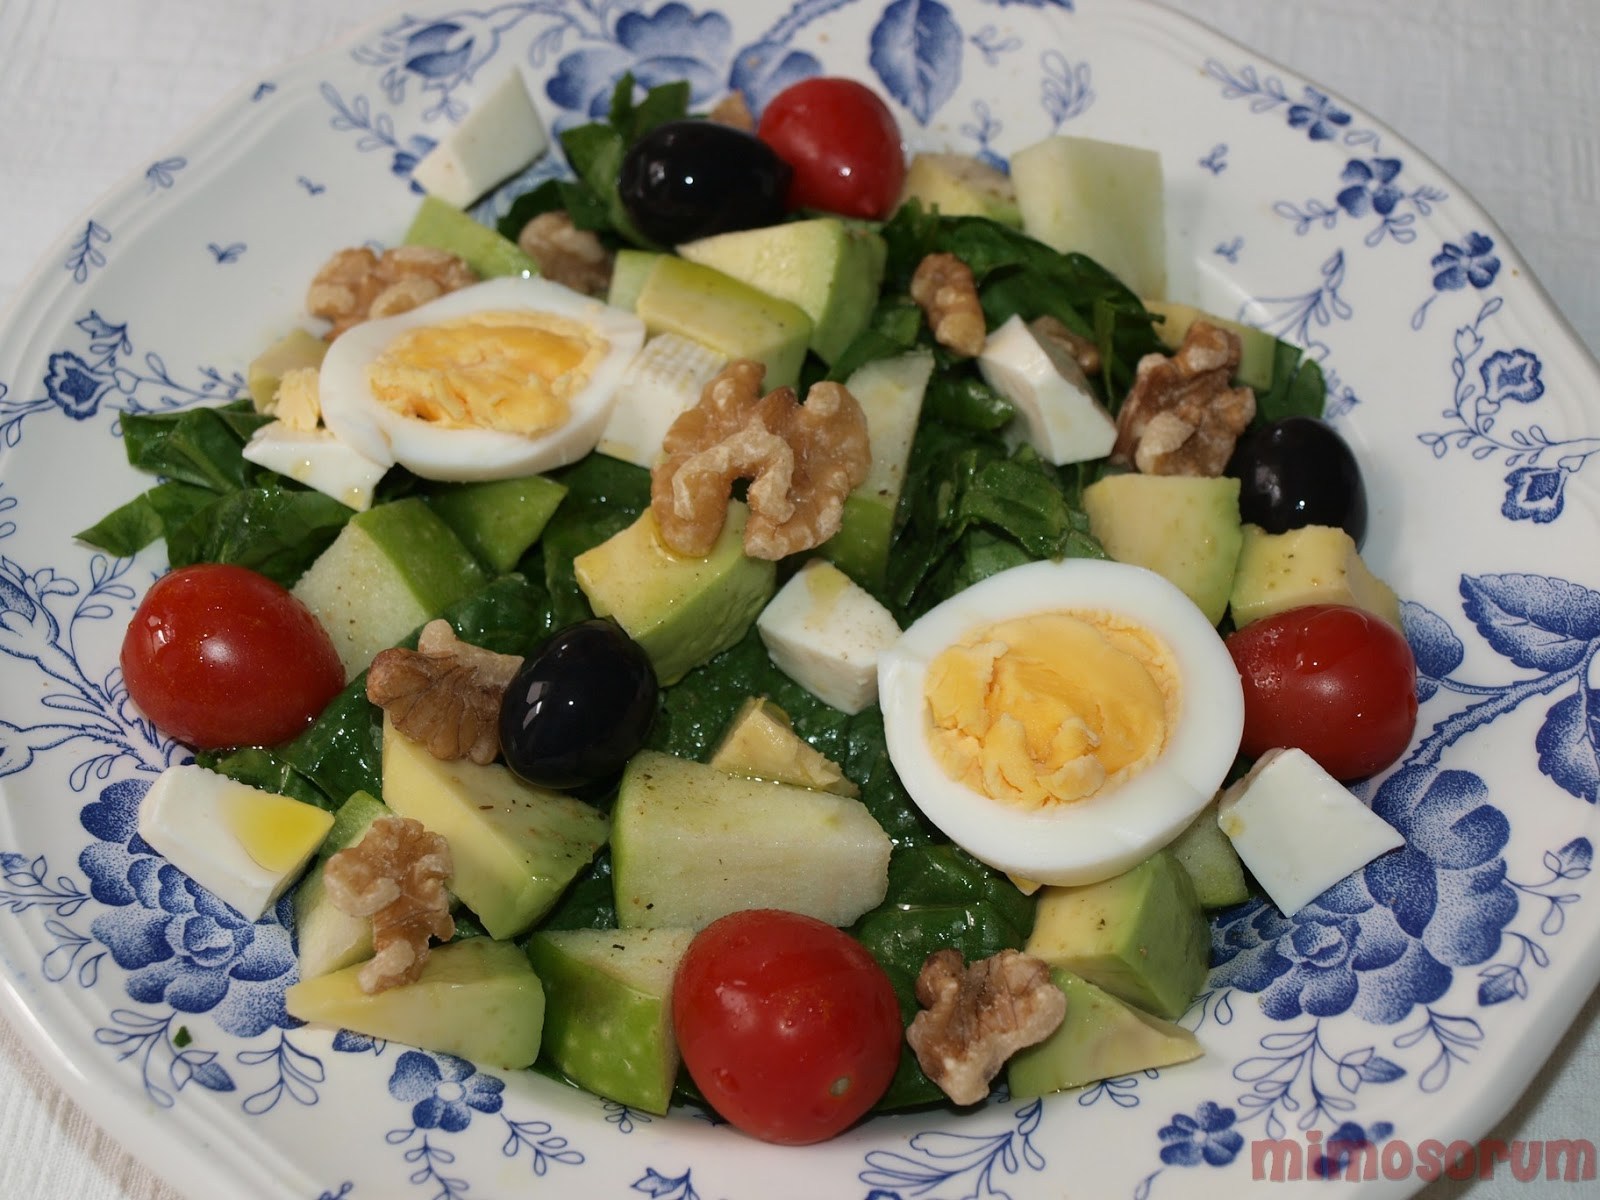 Ensalada de espinacas - Spinach Salad with Walnuts. Mimosorum